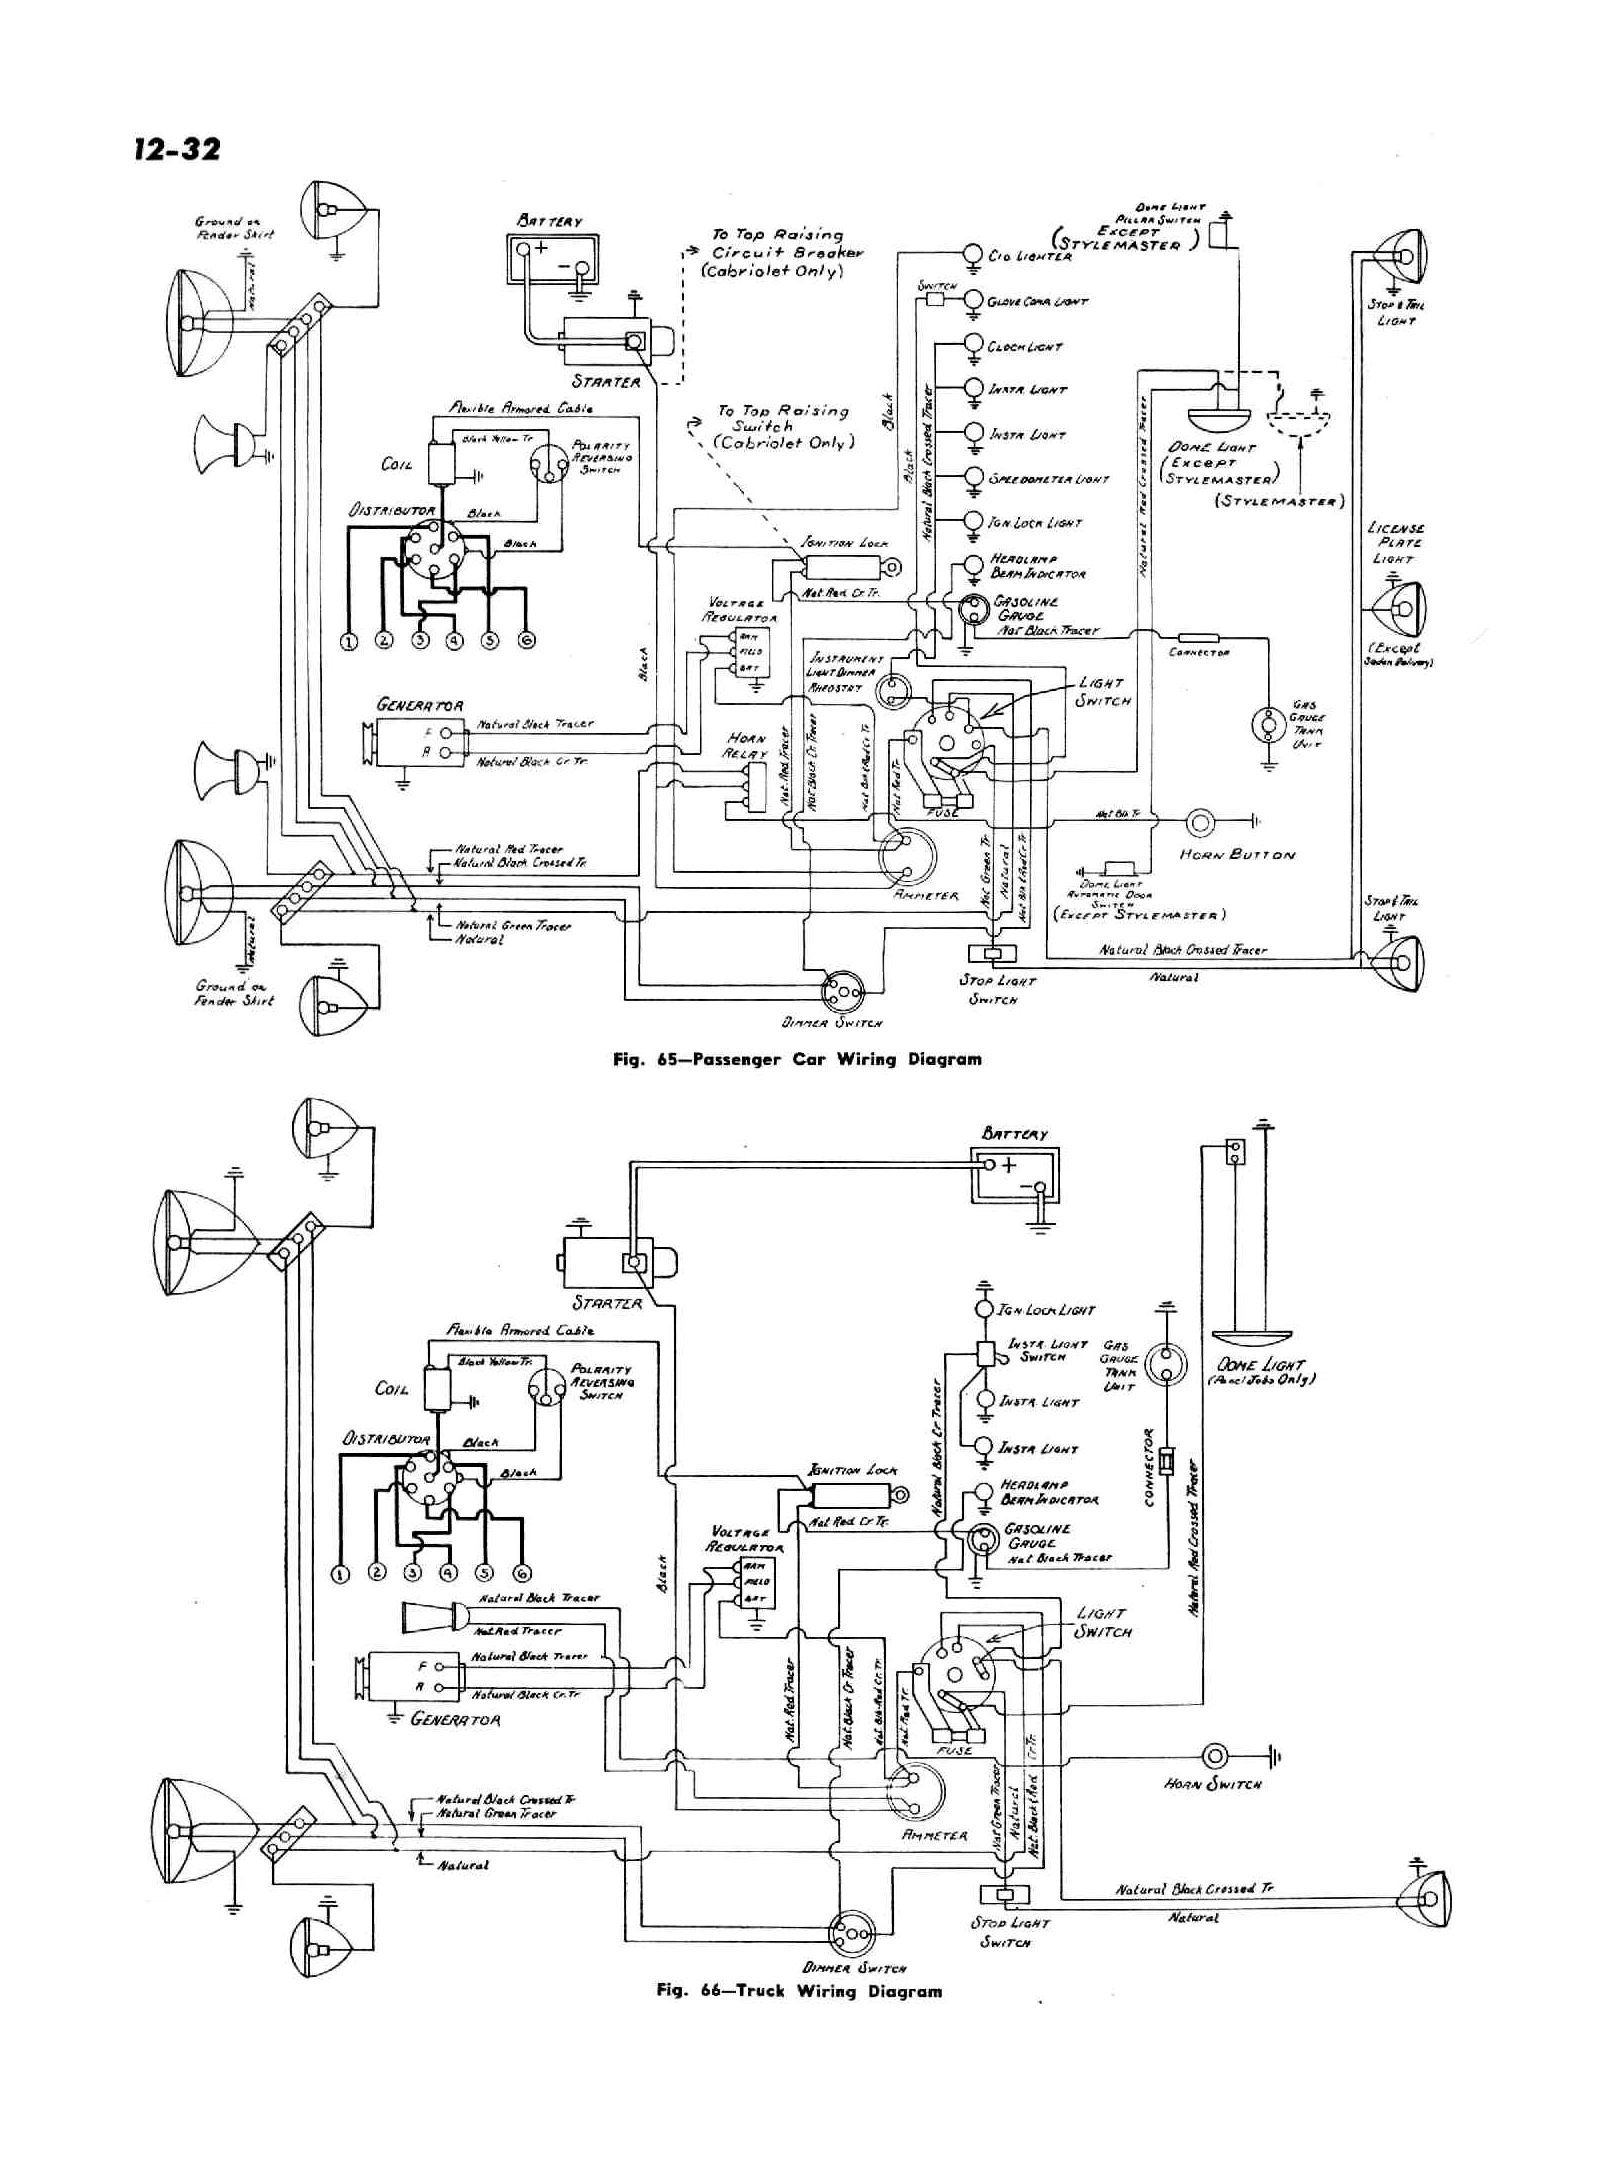 Quicksilver Control Box Wiring Diagram Chevy Throttle Marvellous Mercury Gallery Best Outboard Cute Controller